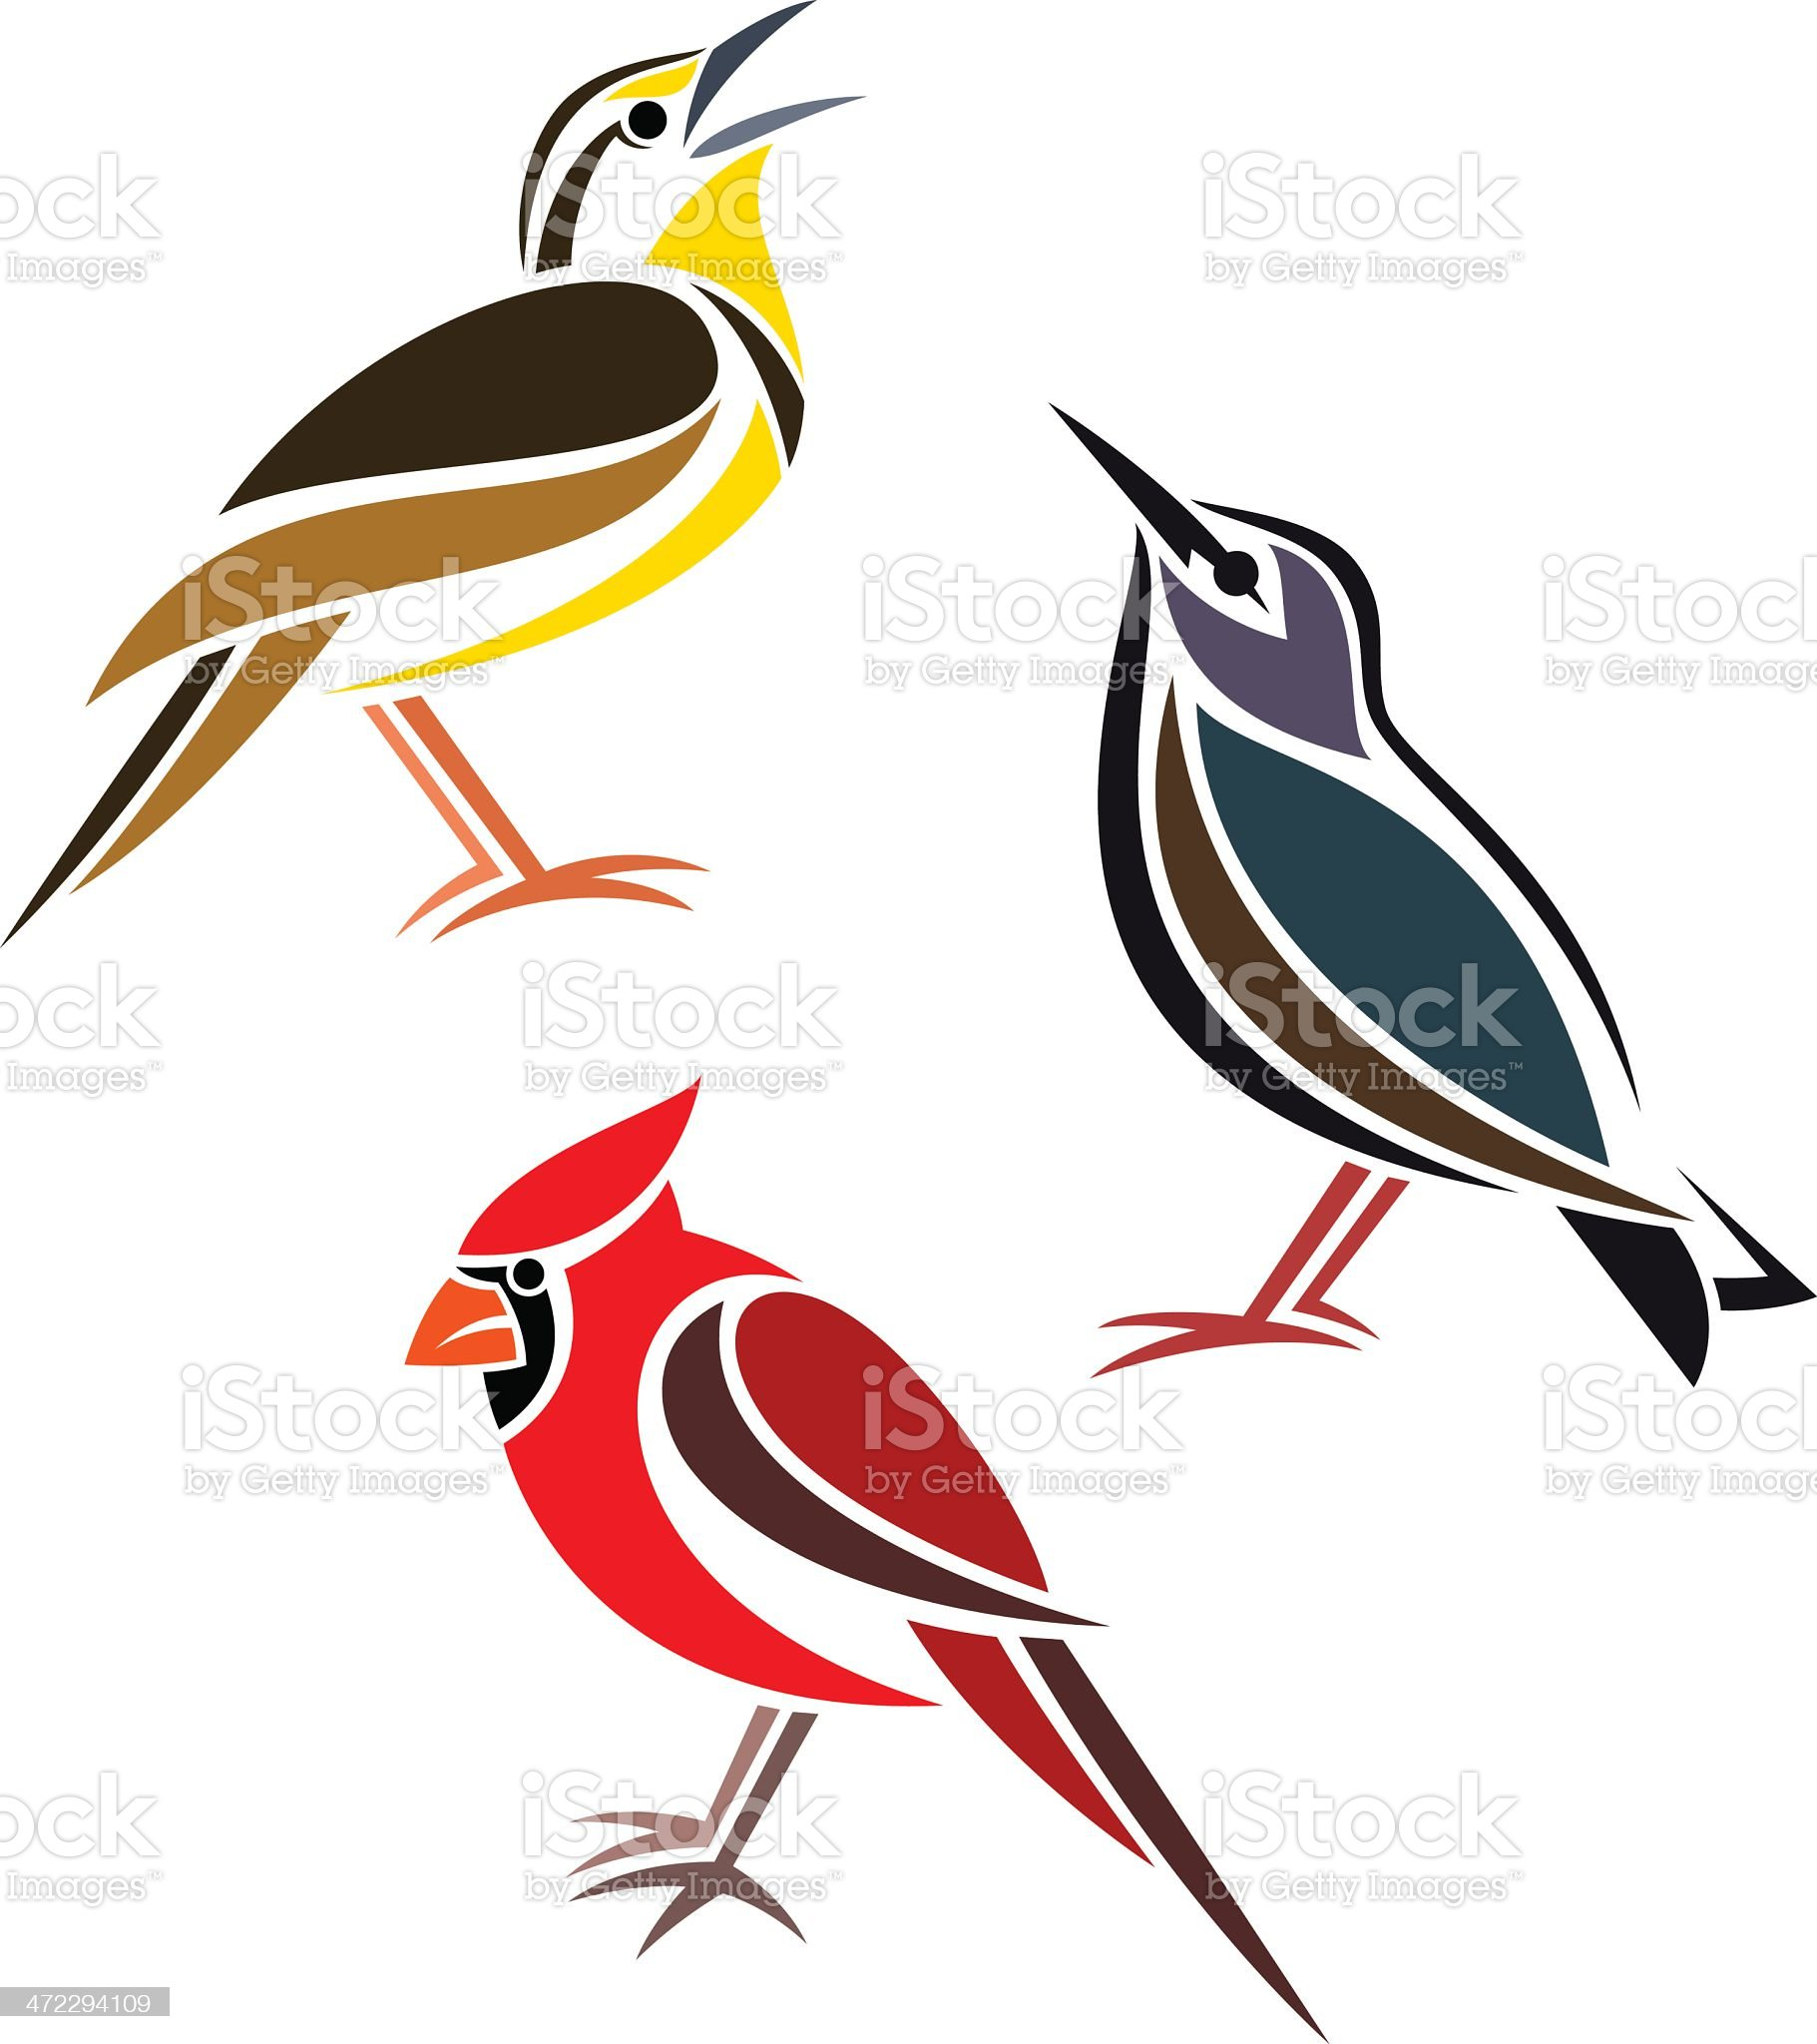 Vector of three birds, one yellow, one red and one blue royalty-free stock vector art